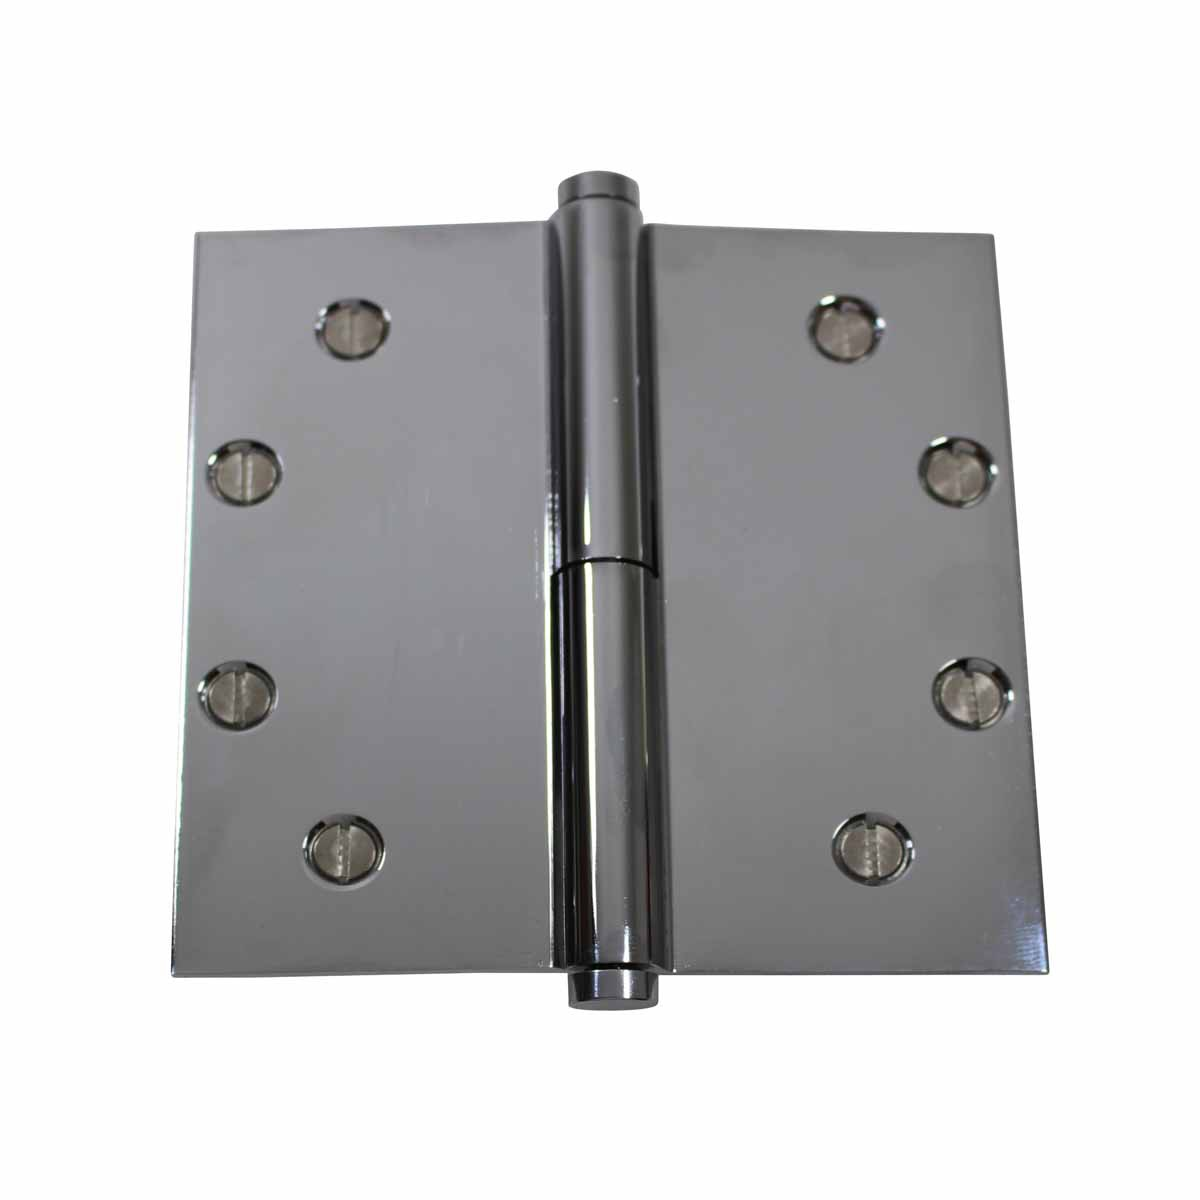 Lift Off Right Chrome Brass Door Hinge Coin Tip  sc 1 th 225 & 5 in. Lift Off Right Chrome Brass Door Hinge Coin Tip